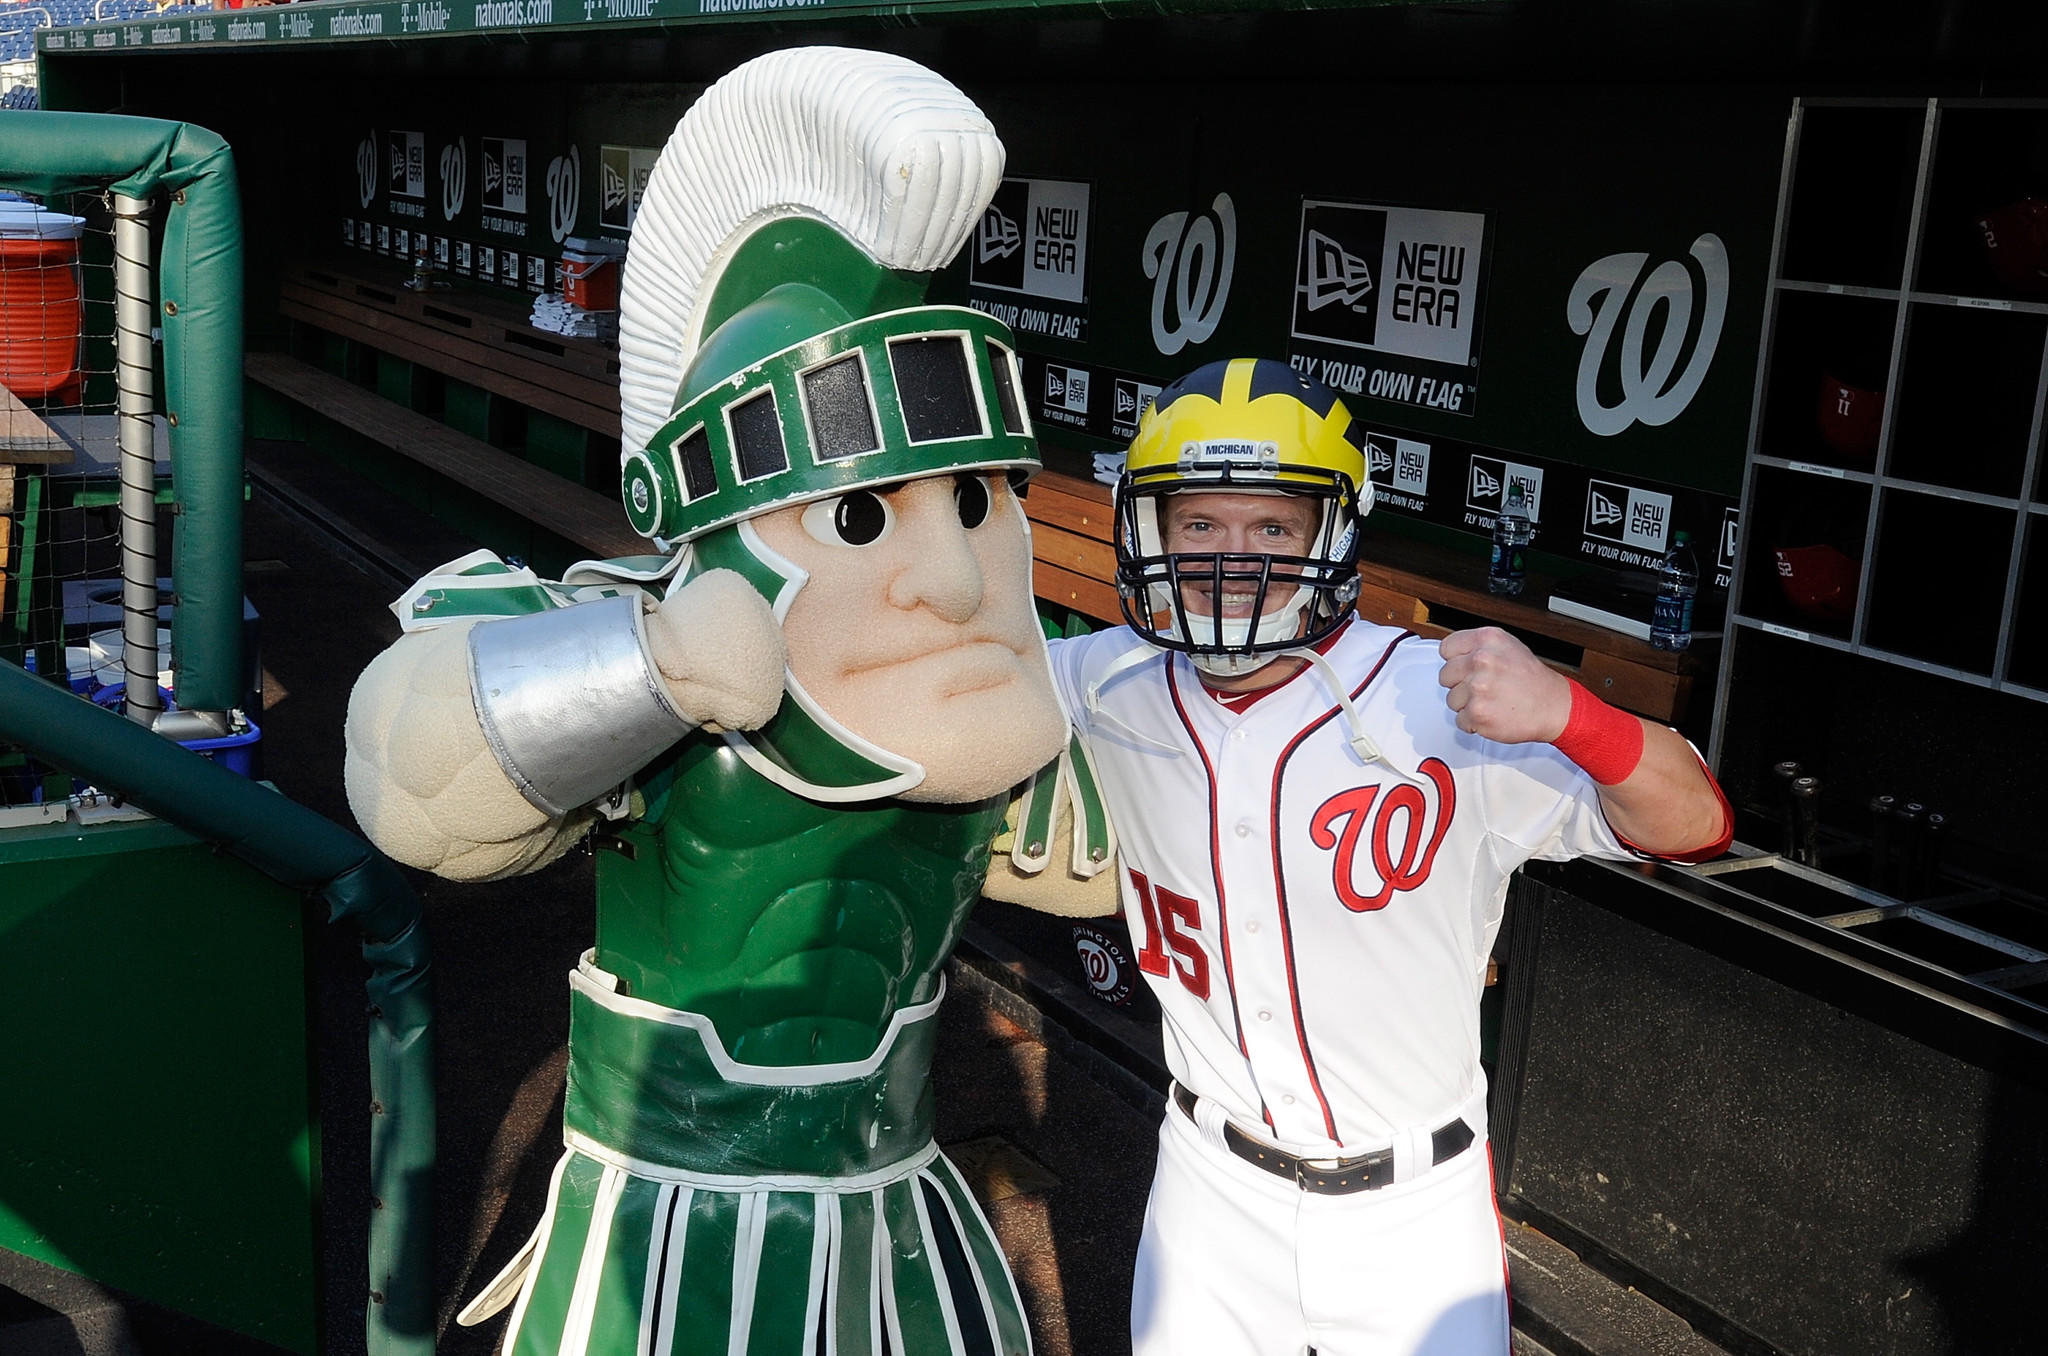 Washington Nationals outfielder Nate McLouth wears a Michigan football helmet as he poses with Michigan State's mascot before a game Monday.